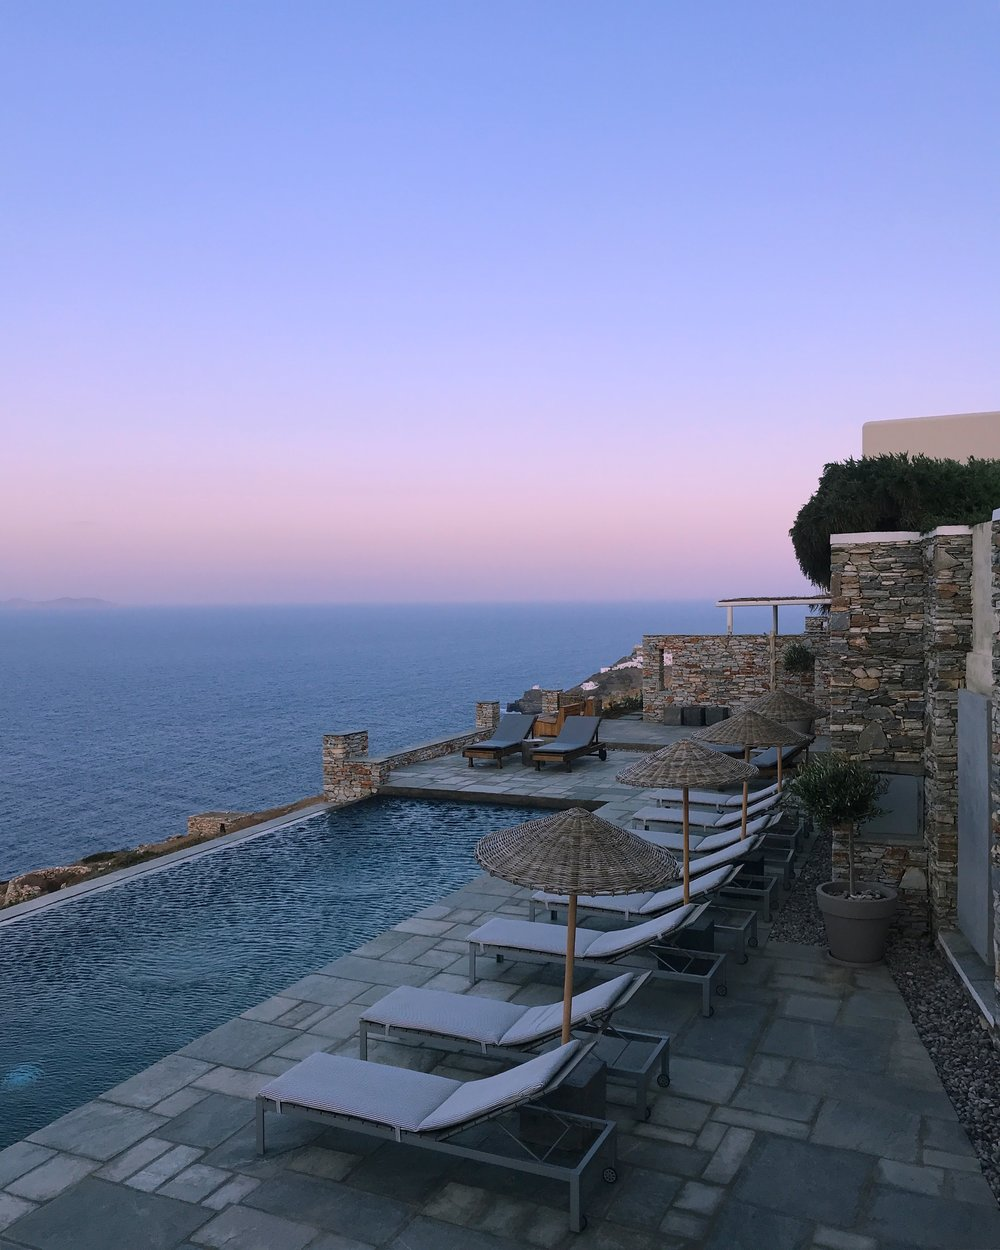 Dusk at the infinity pool at Astra Verina.